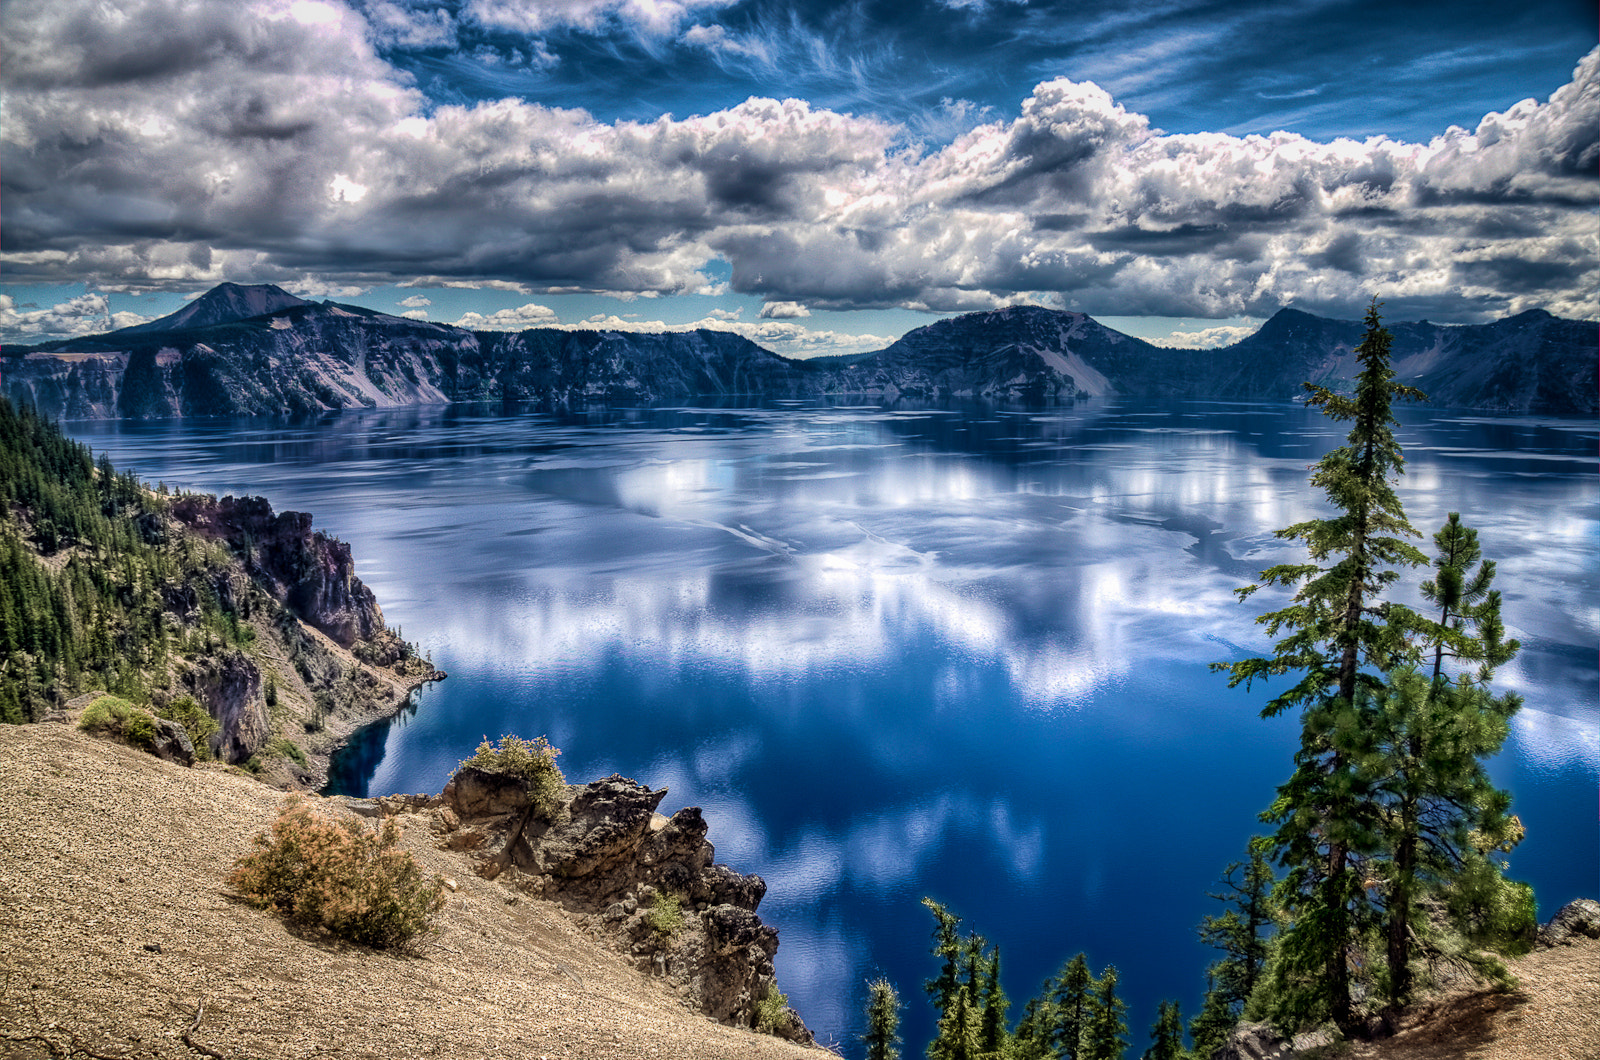 Photograph Crater Lake, Oregon by Steve Steinmetz on 500px